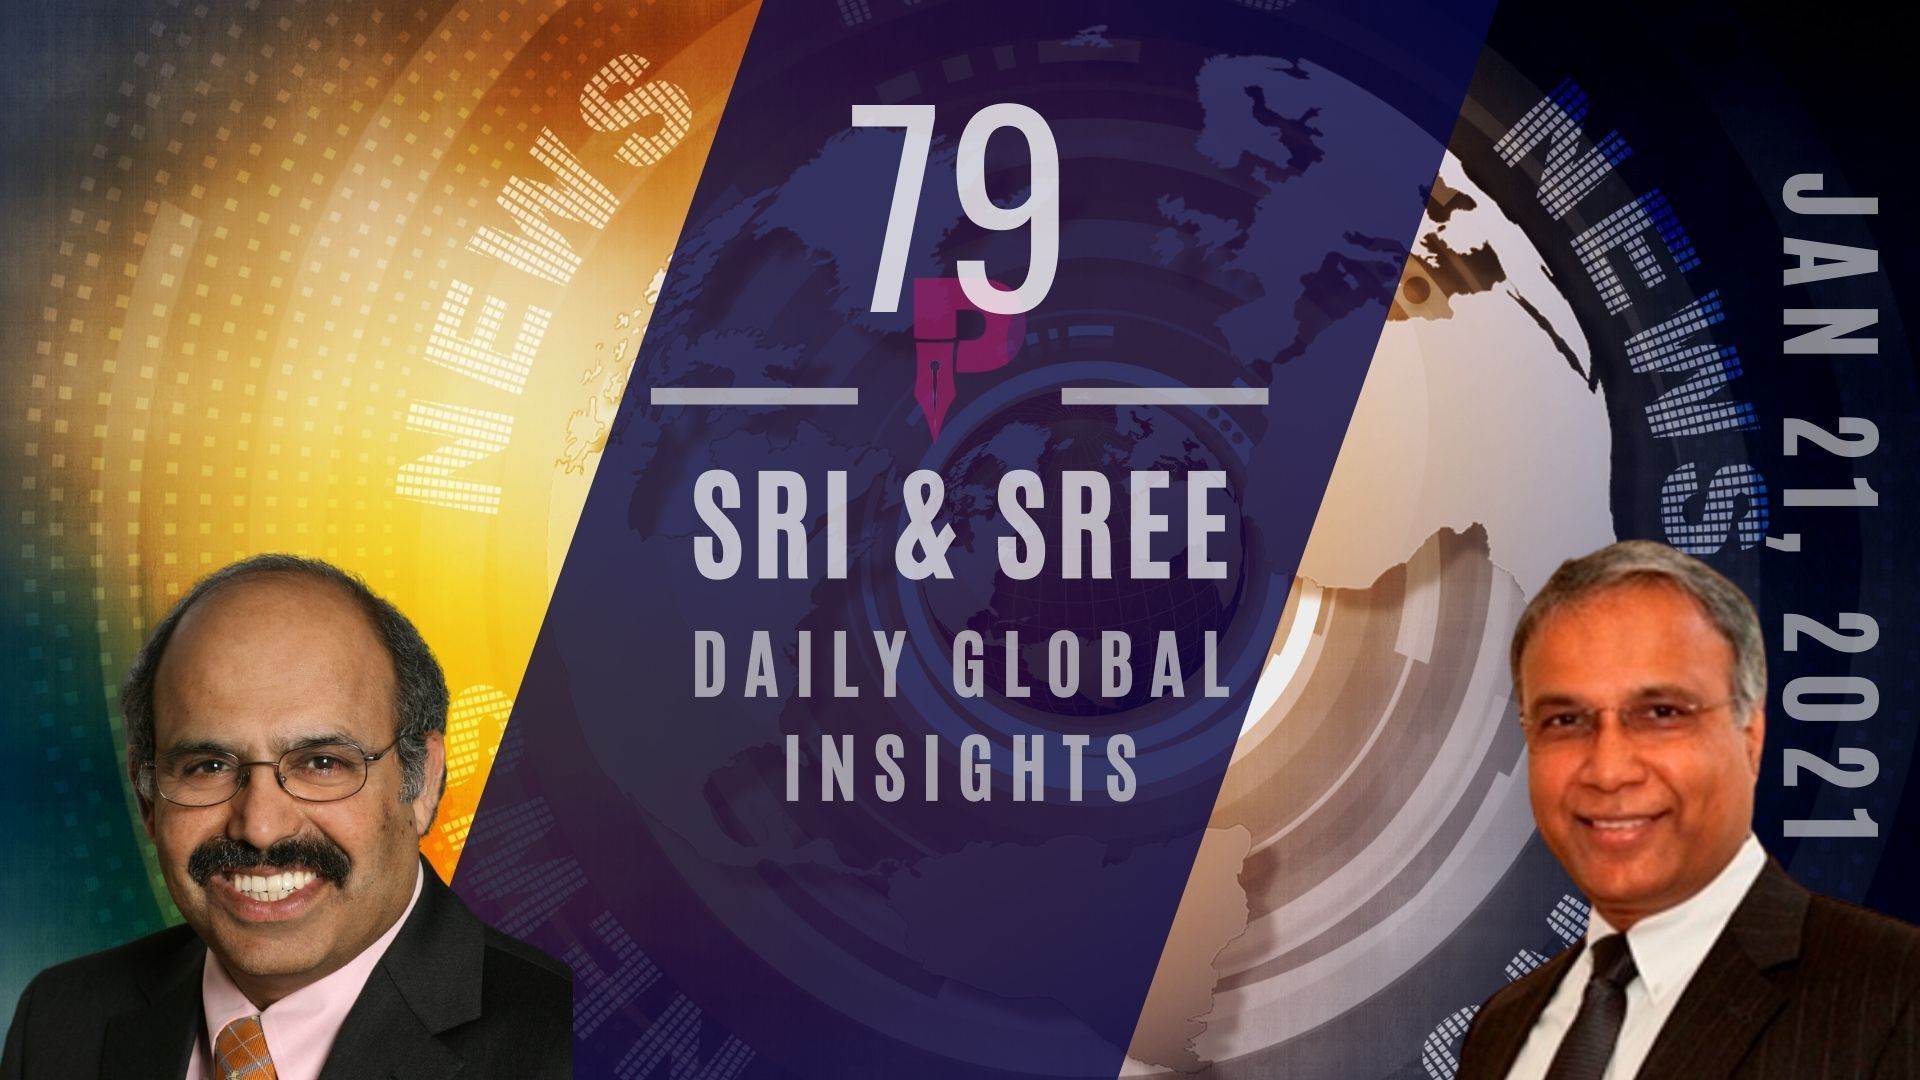 #DailyGlobalInsights #EP79 Biden's first day - 17 Exec actions signed. Keystone XL pipeline canned. Amazon India, AWS are making big moves in India & more